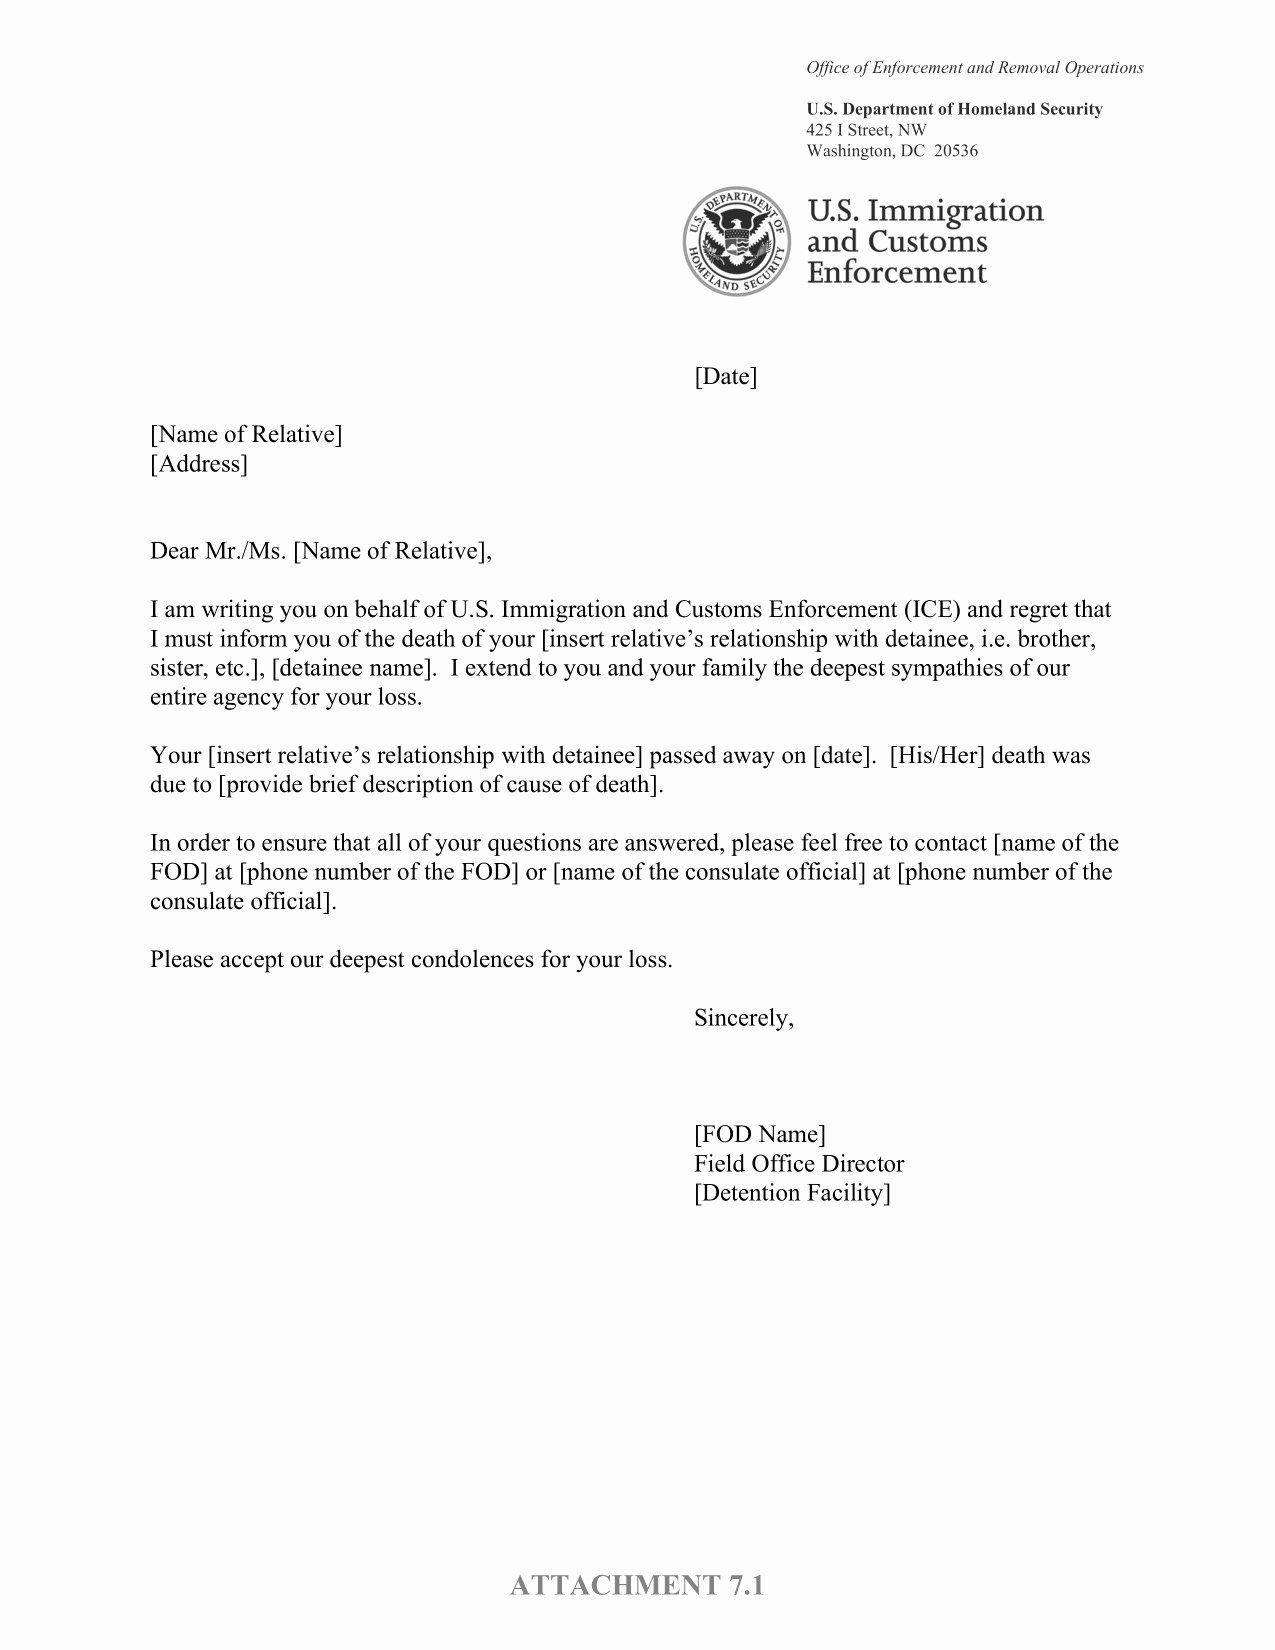 Sample Letter Of Death Notification to Friends Unique Ice's Detainee Death Notification Letter – Altgov 2